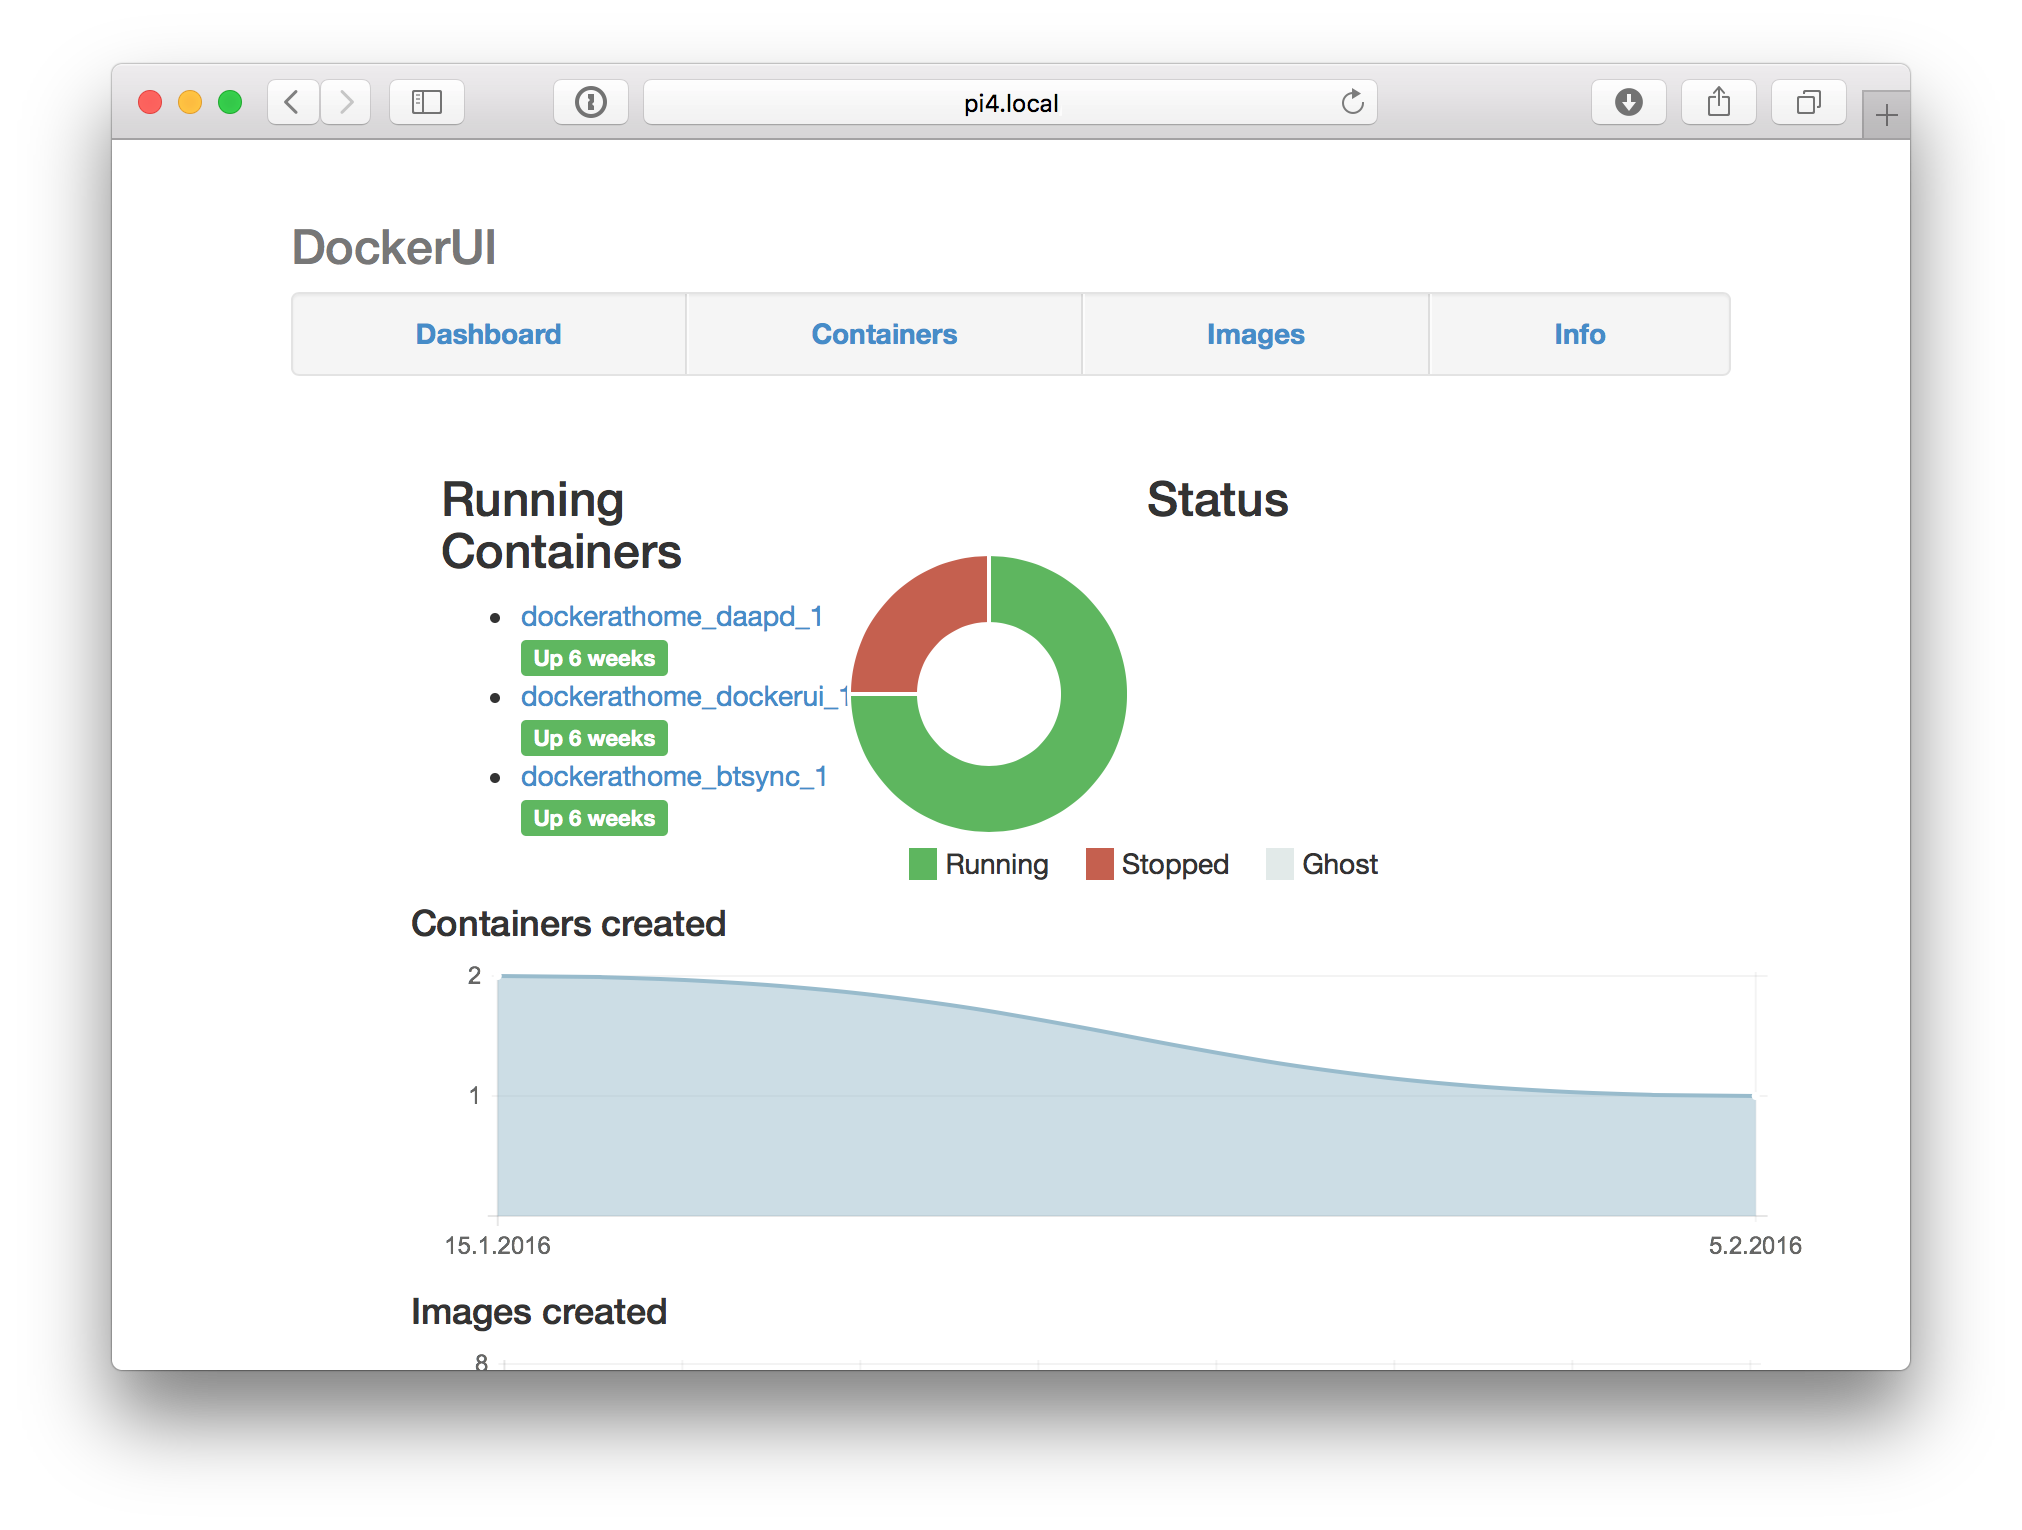 DockerUI Dashboard